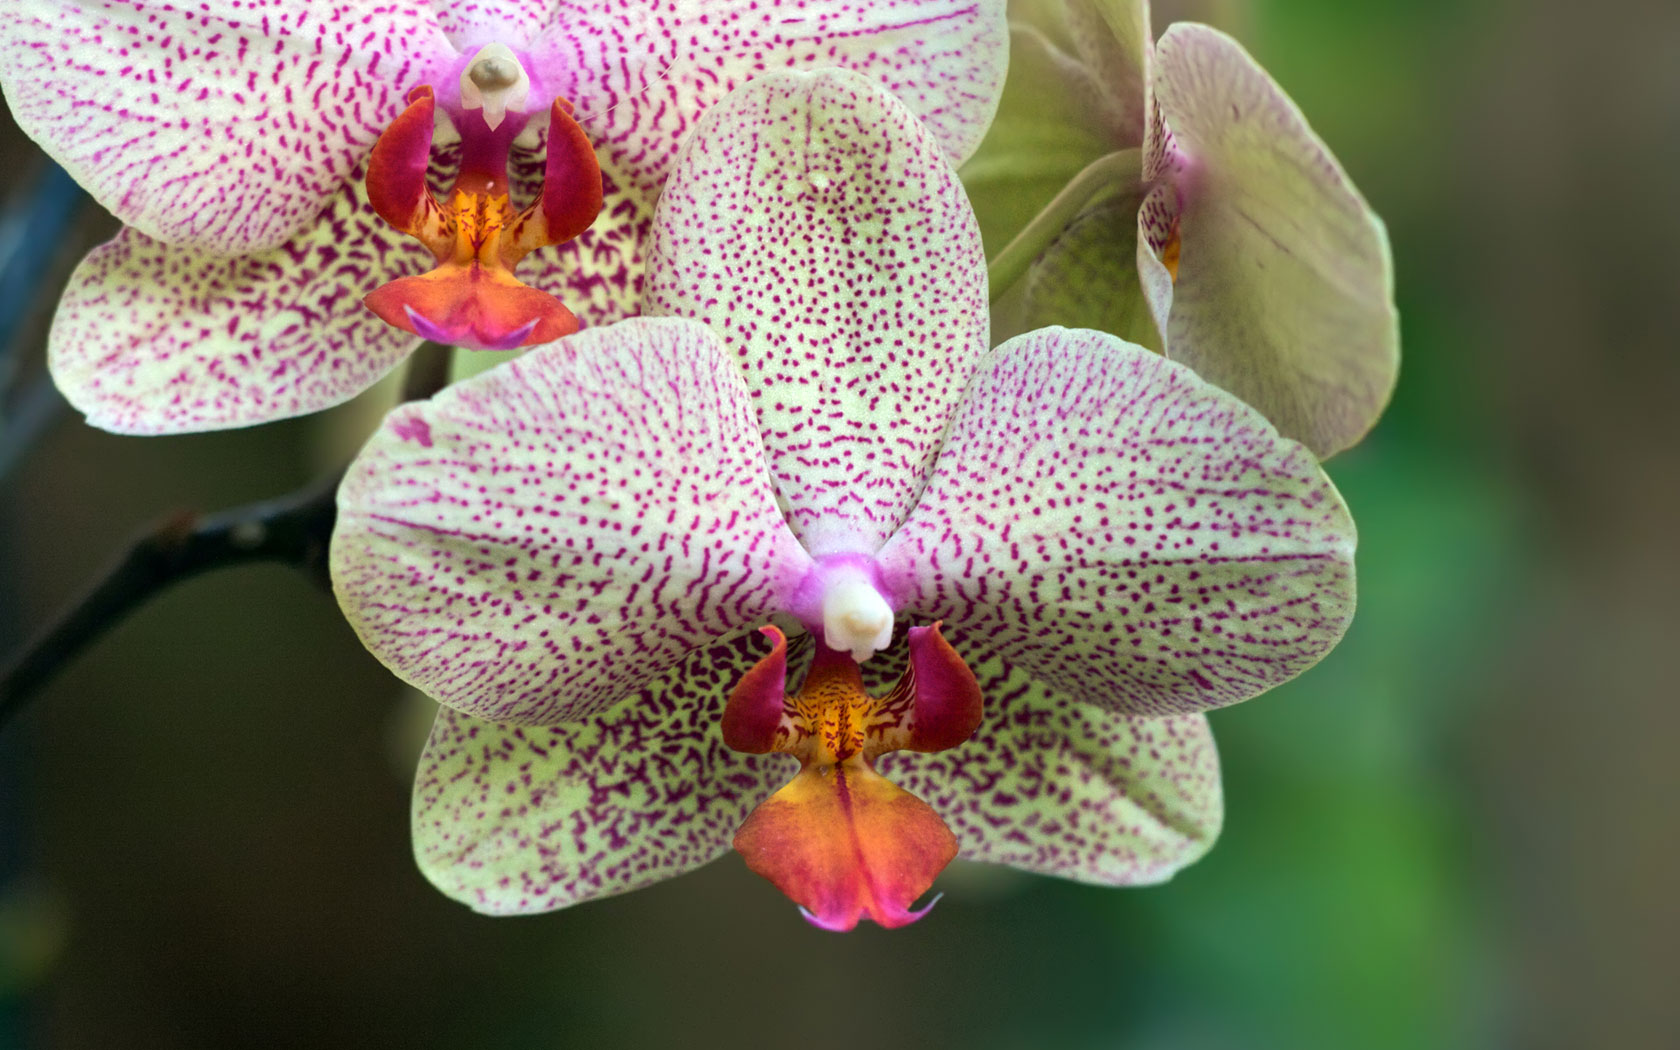 HQ Wallpaper Of A White And Purple Orchid Flower Wallpaper